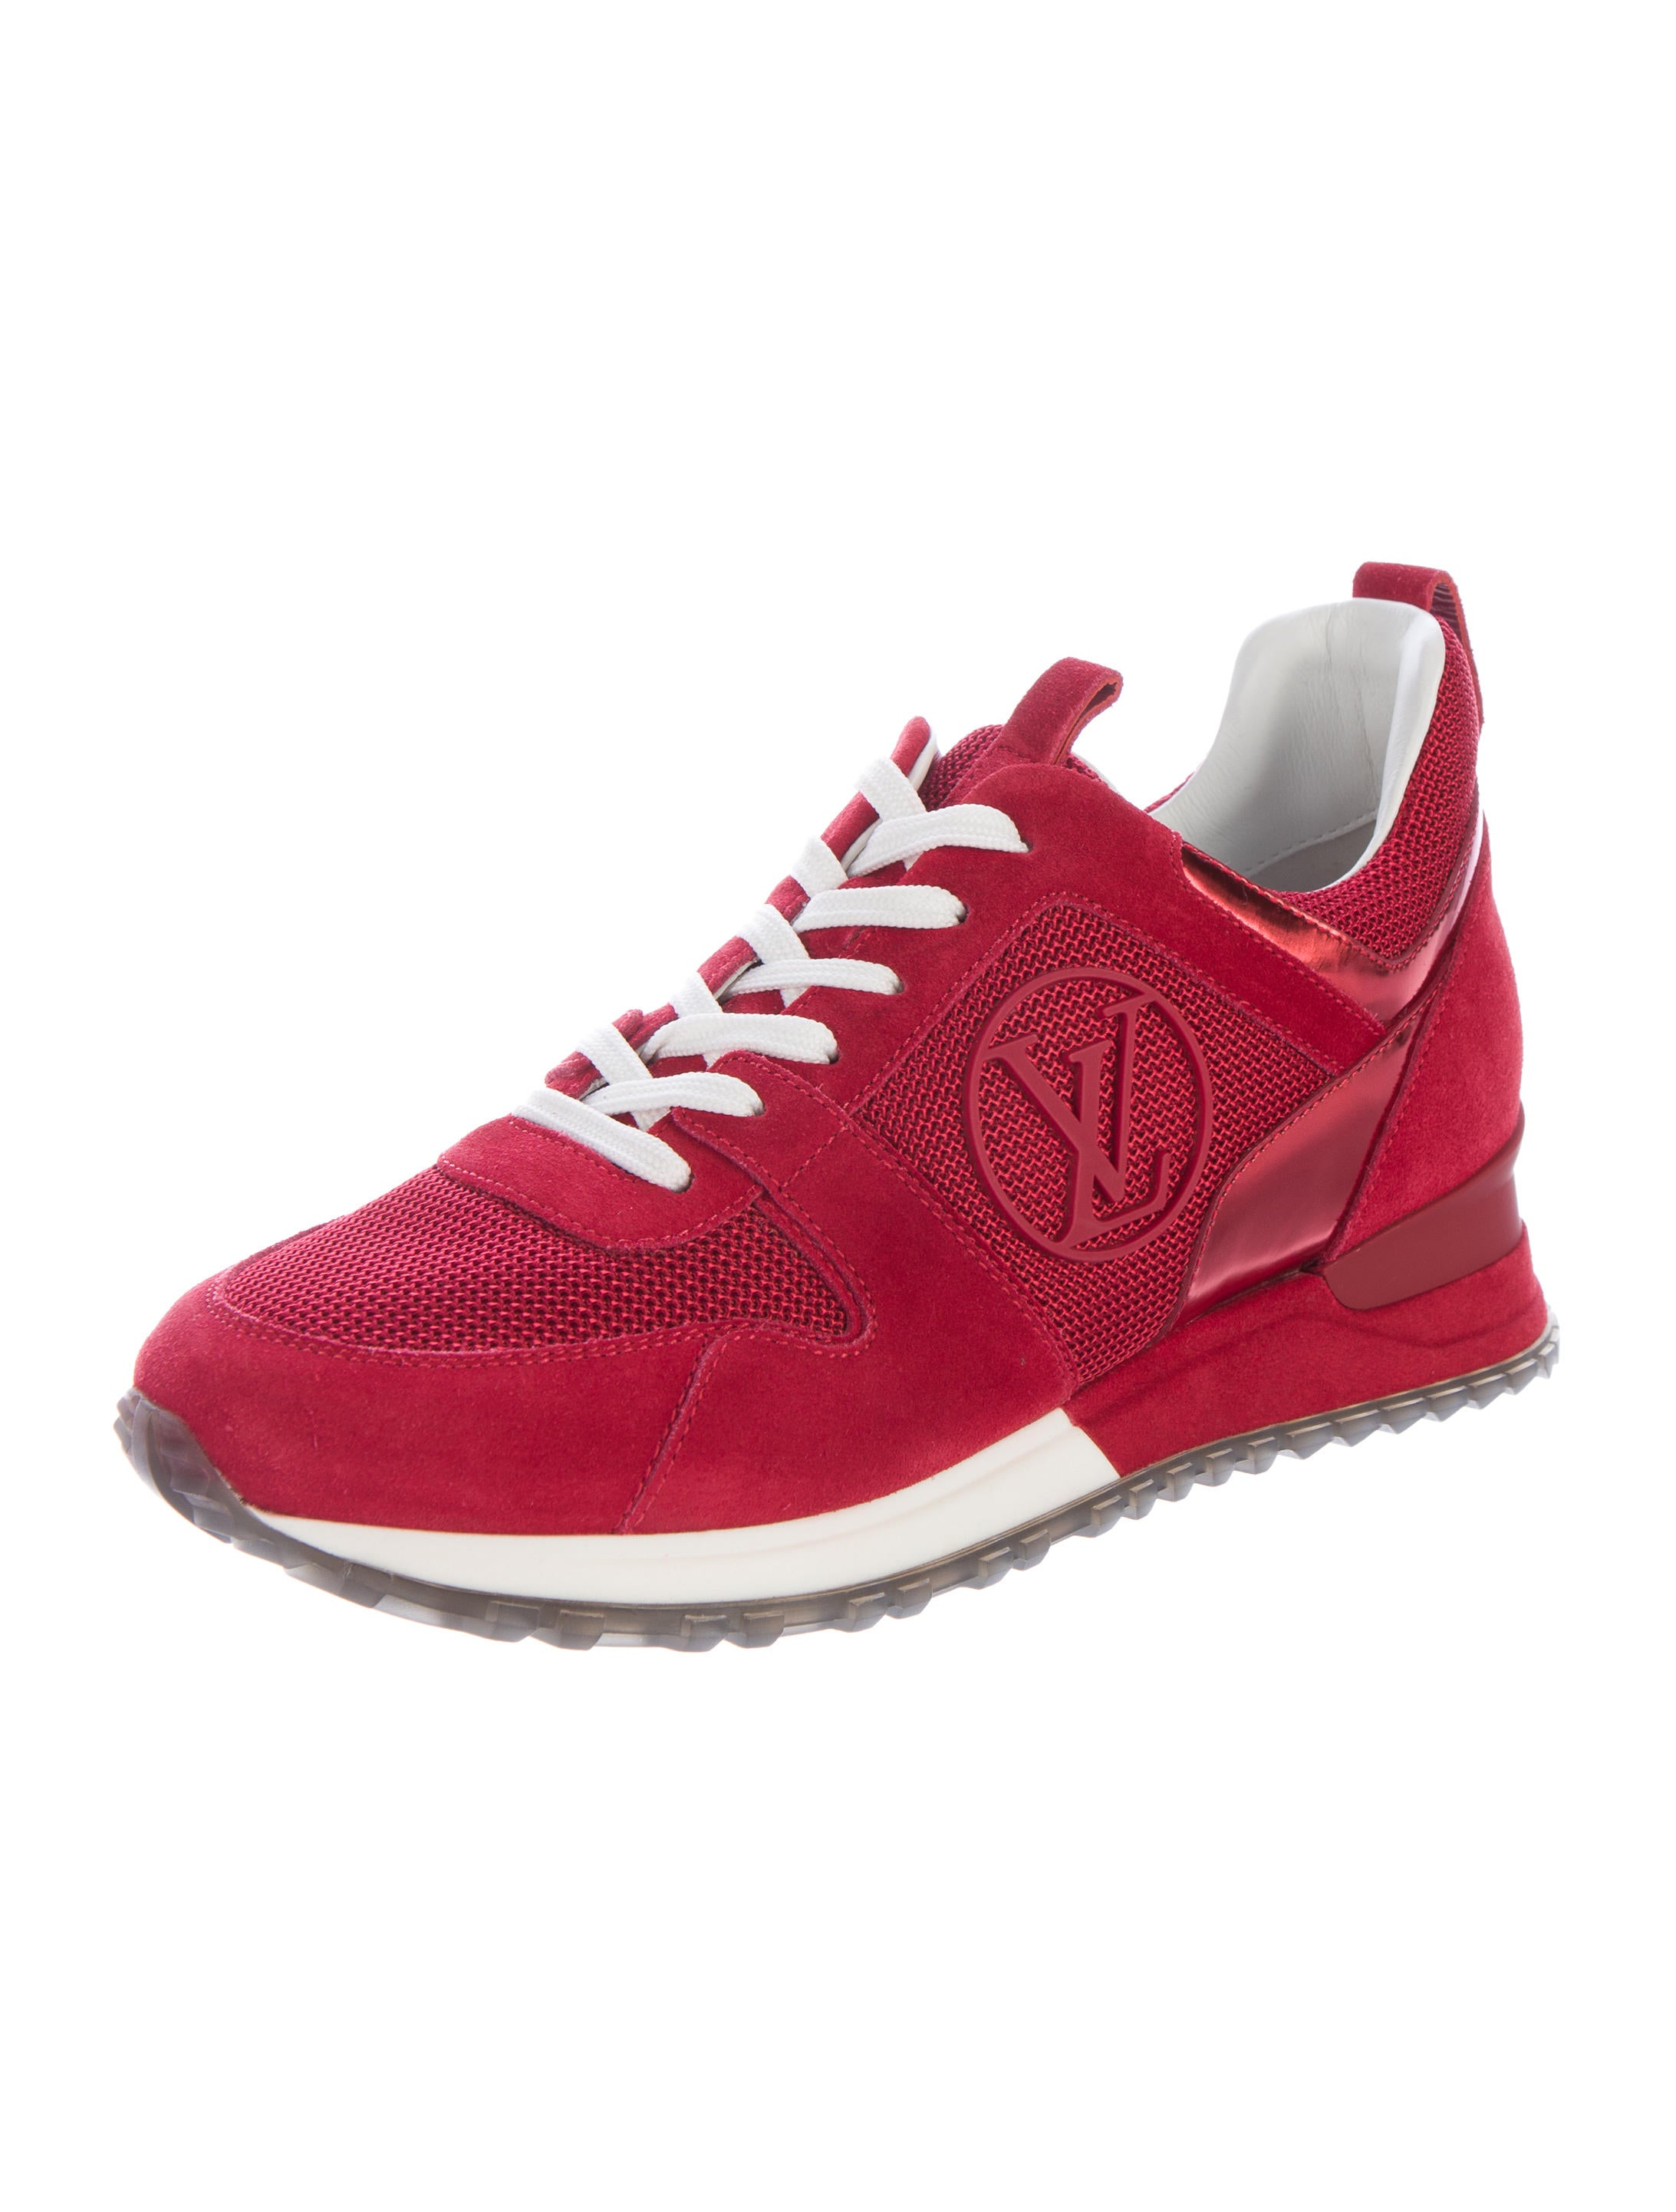 Louis Vuitton Suede Run Away Sneakers Shoes LOU99033  : LOU990332enlarged from www.therealreal.com size 2185 x 2883 jpeg 312kB